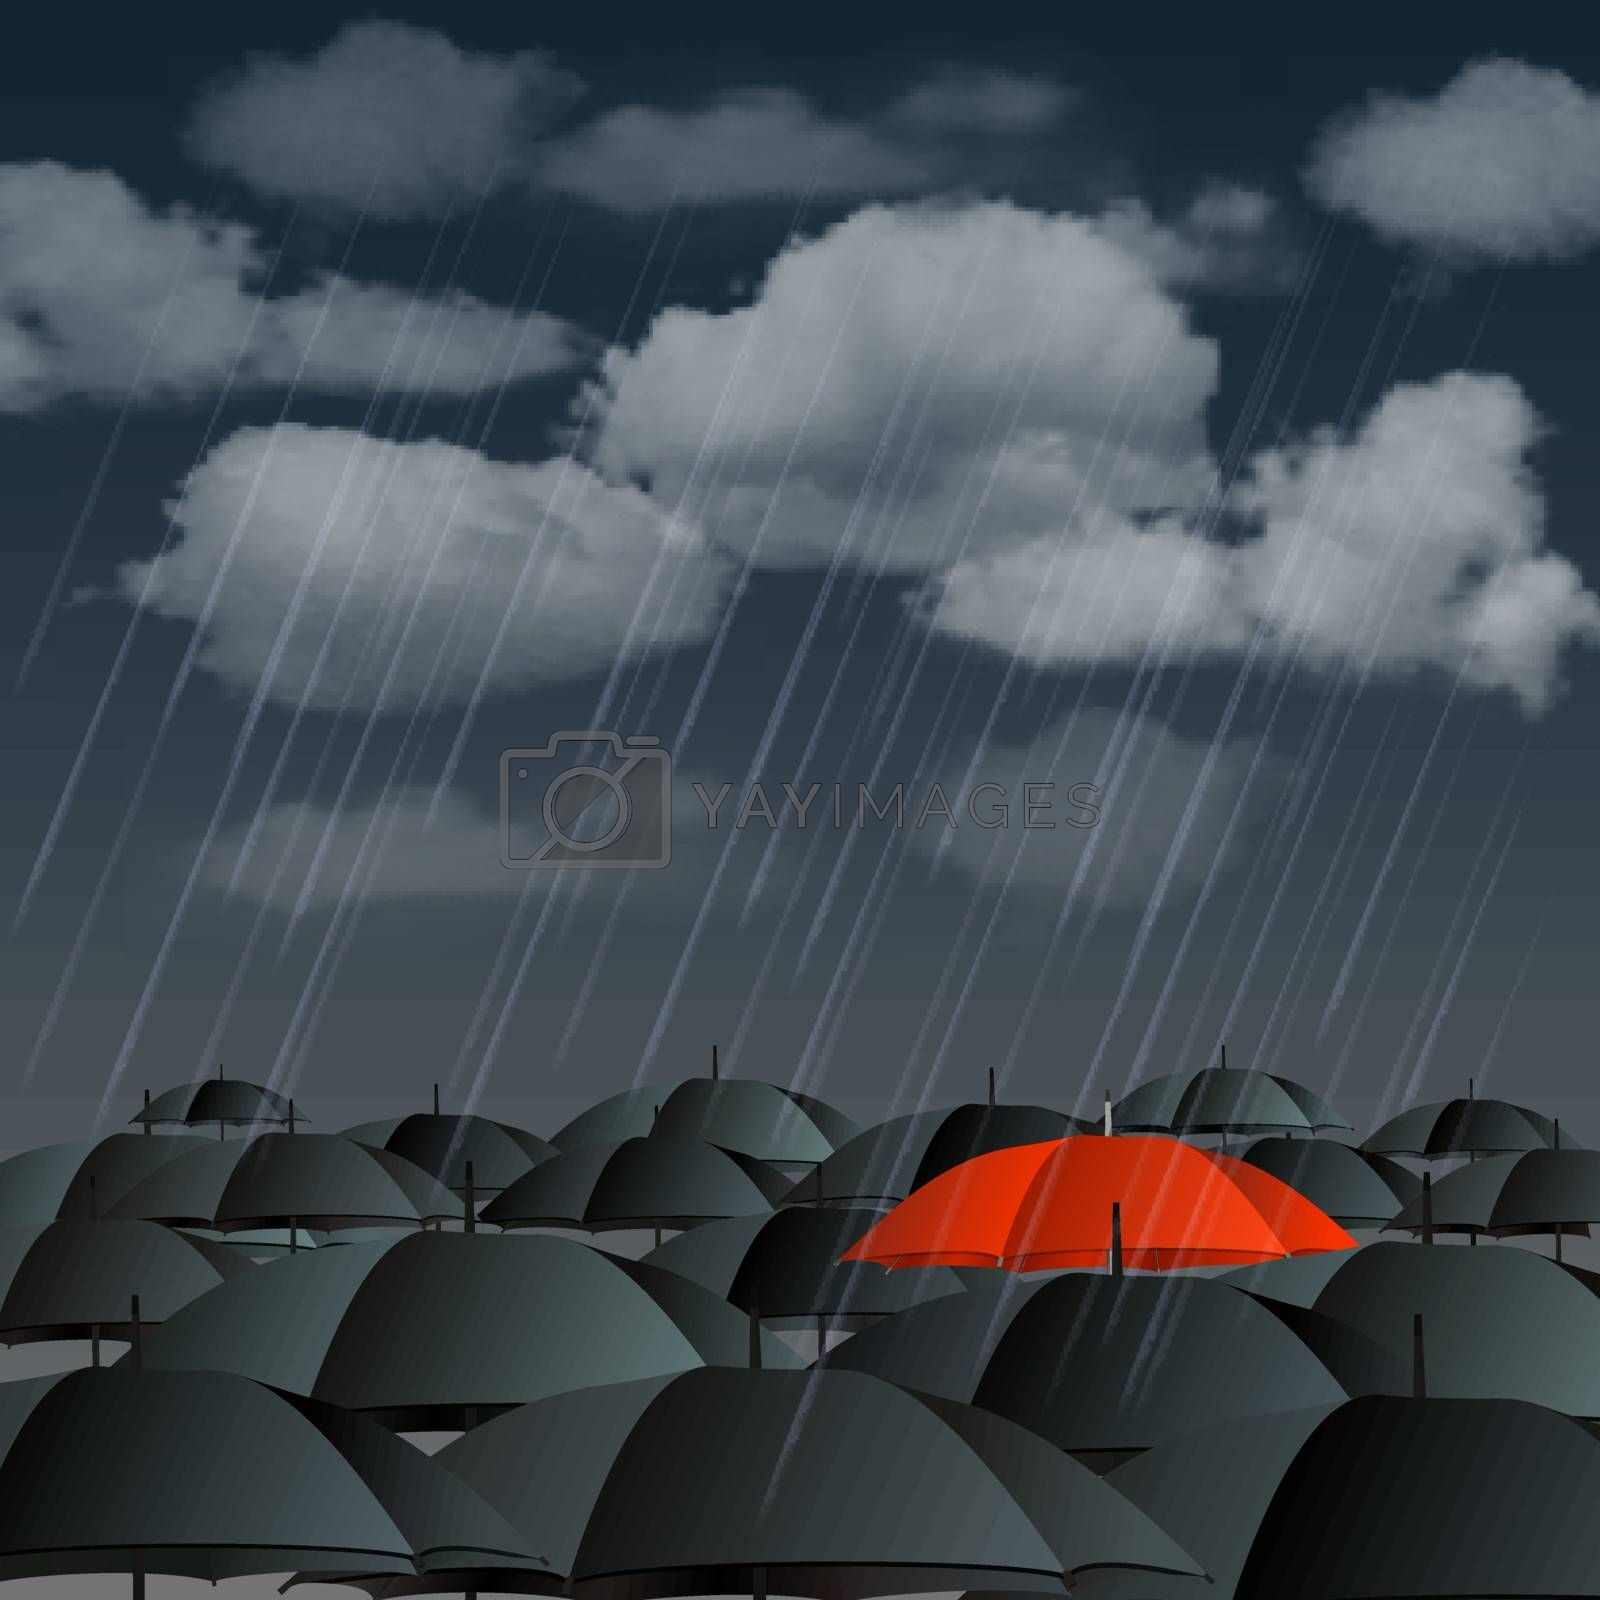 Standing out from the crowd, high angle view of red umbrella over many dark ones. Vector illustration